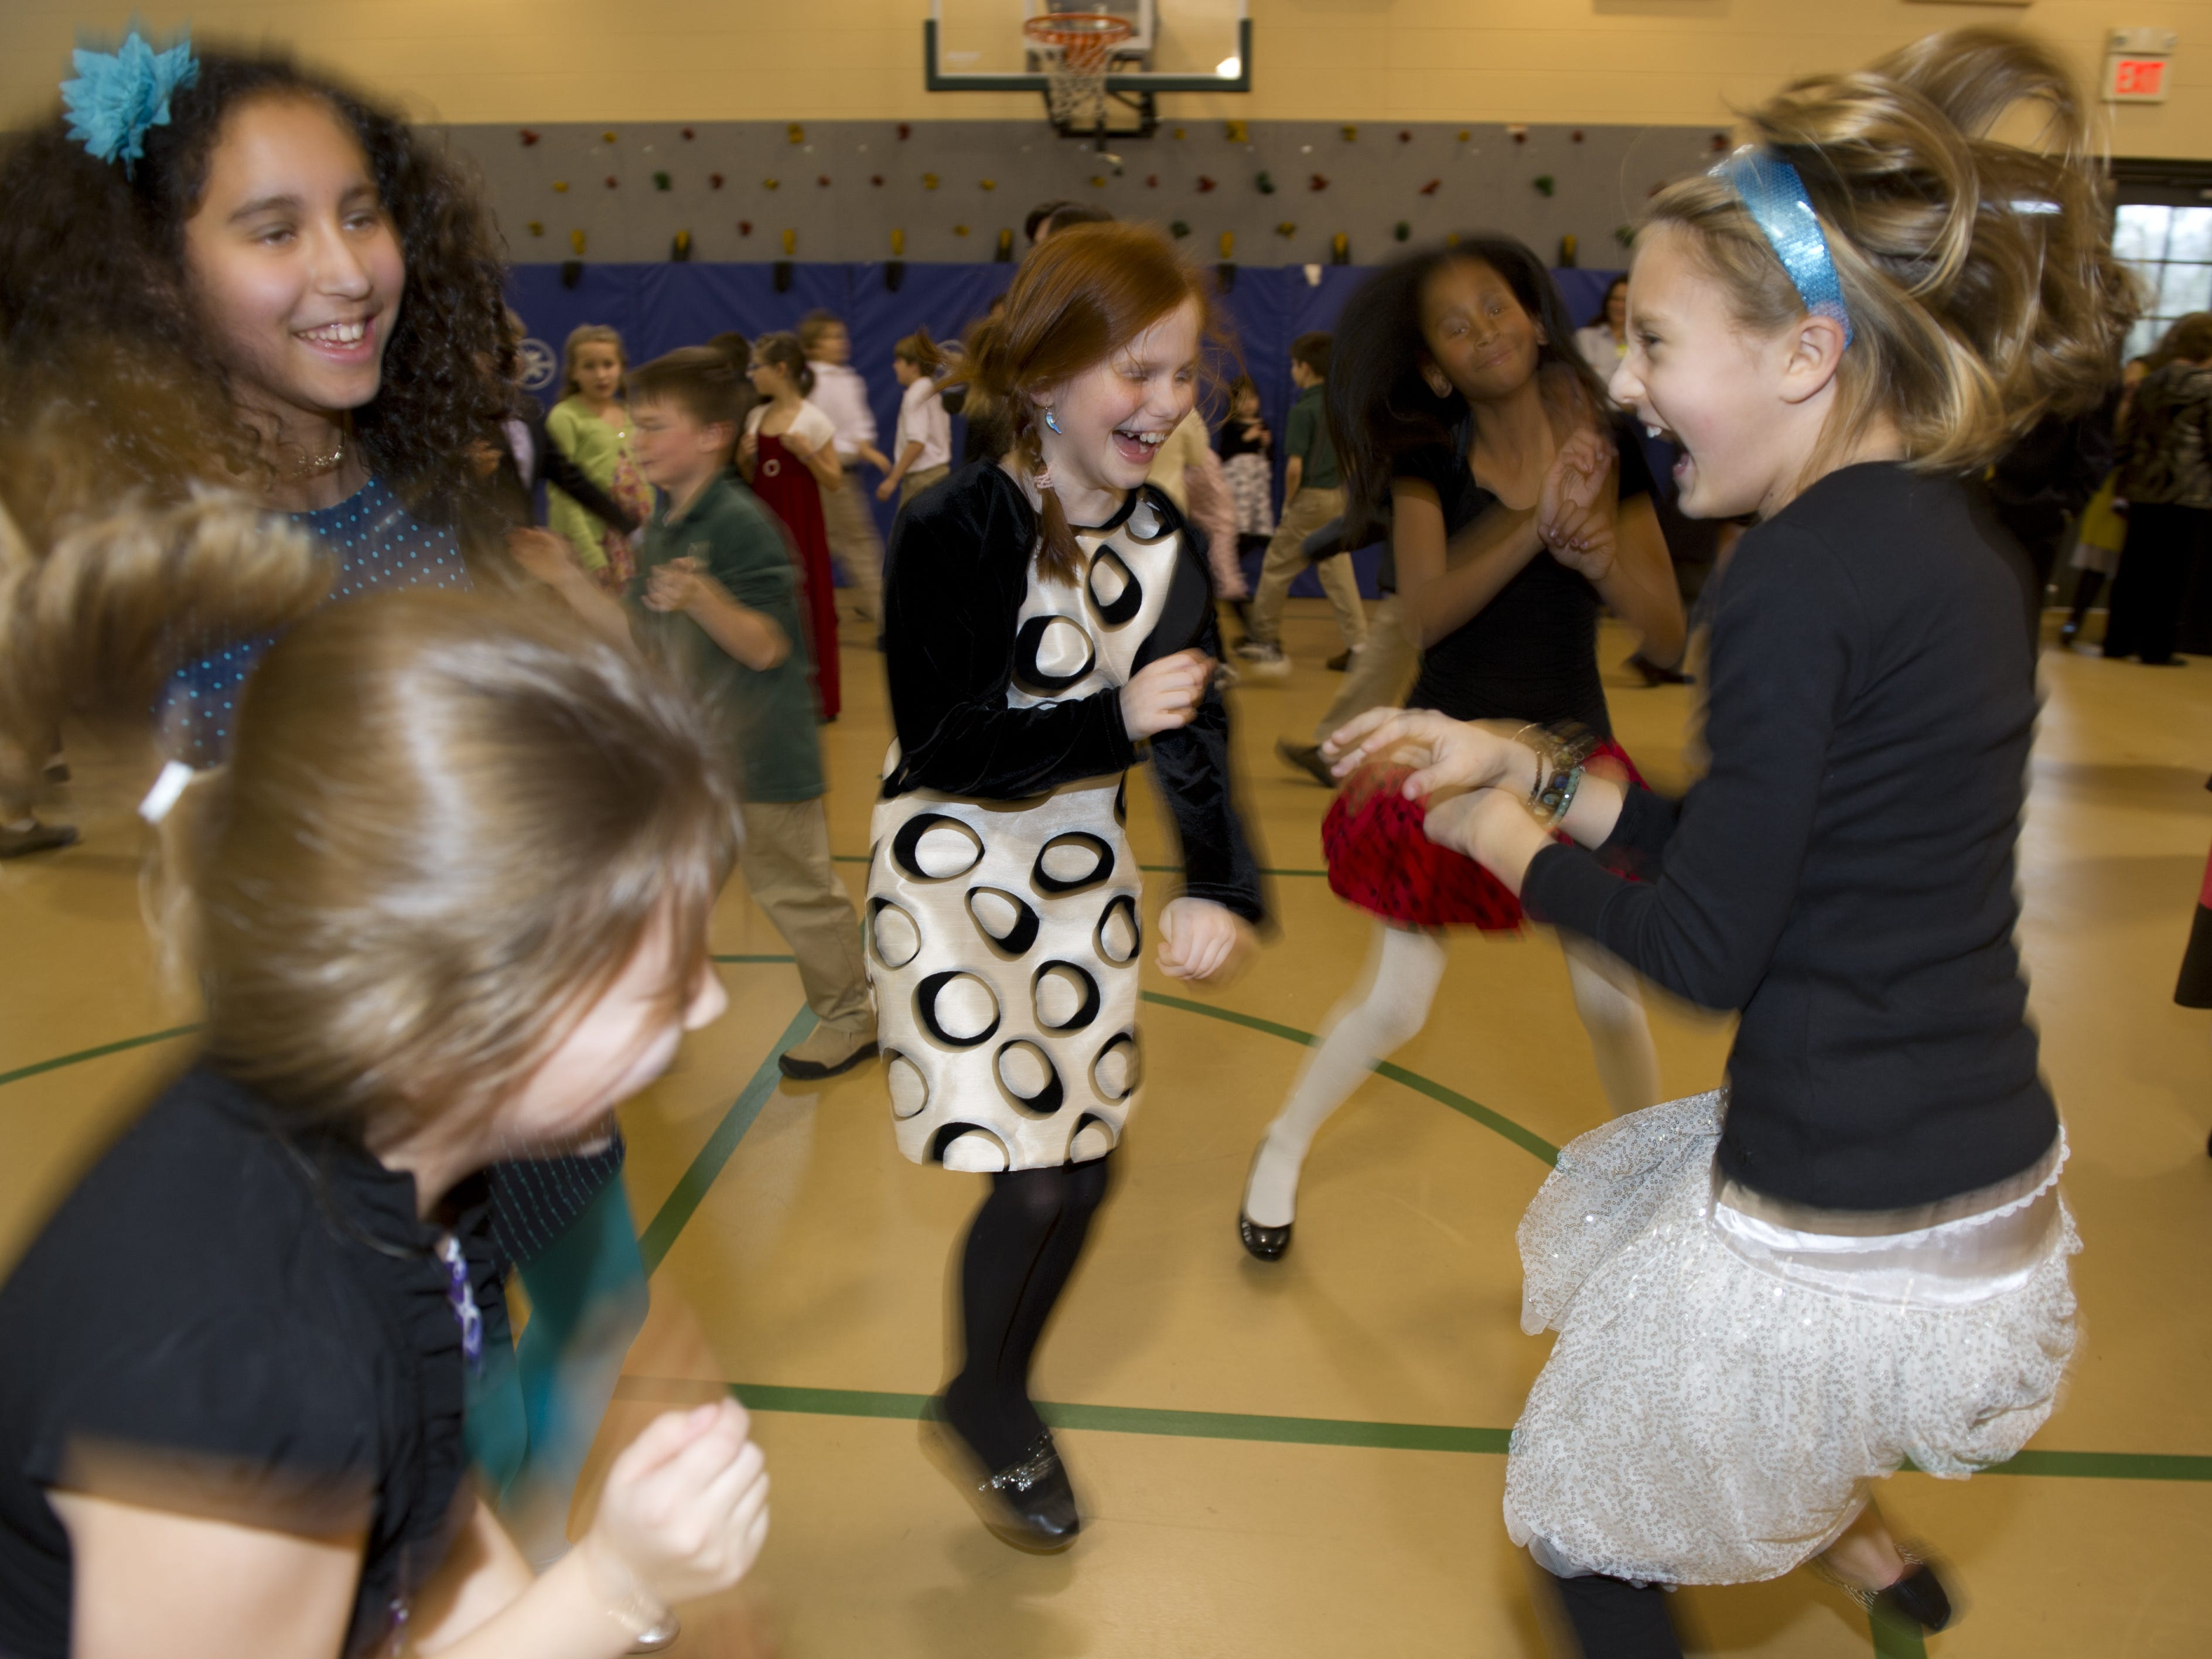 Students dance in the Currey Ingram gymnasium school's Inaugural Ball that celebrated the second inauguration of President Barack Obama in 2013.